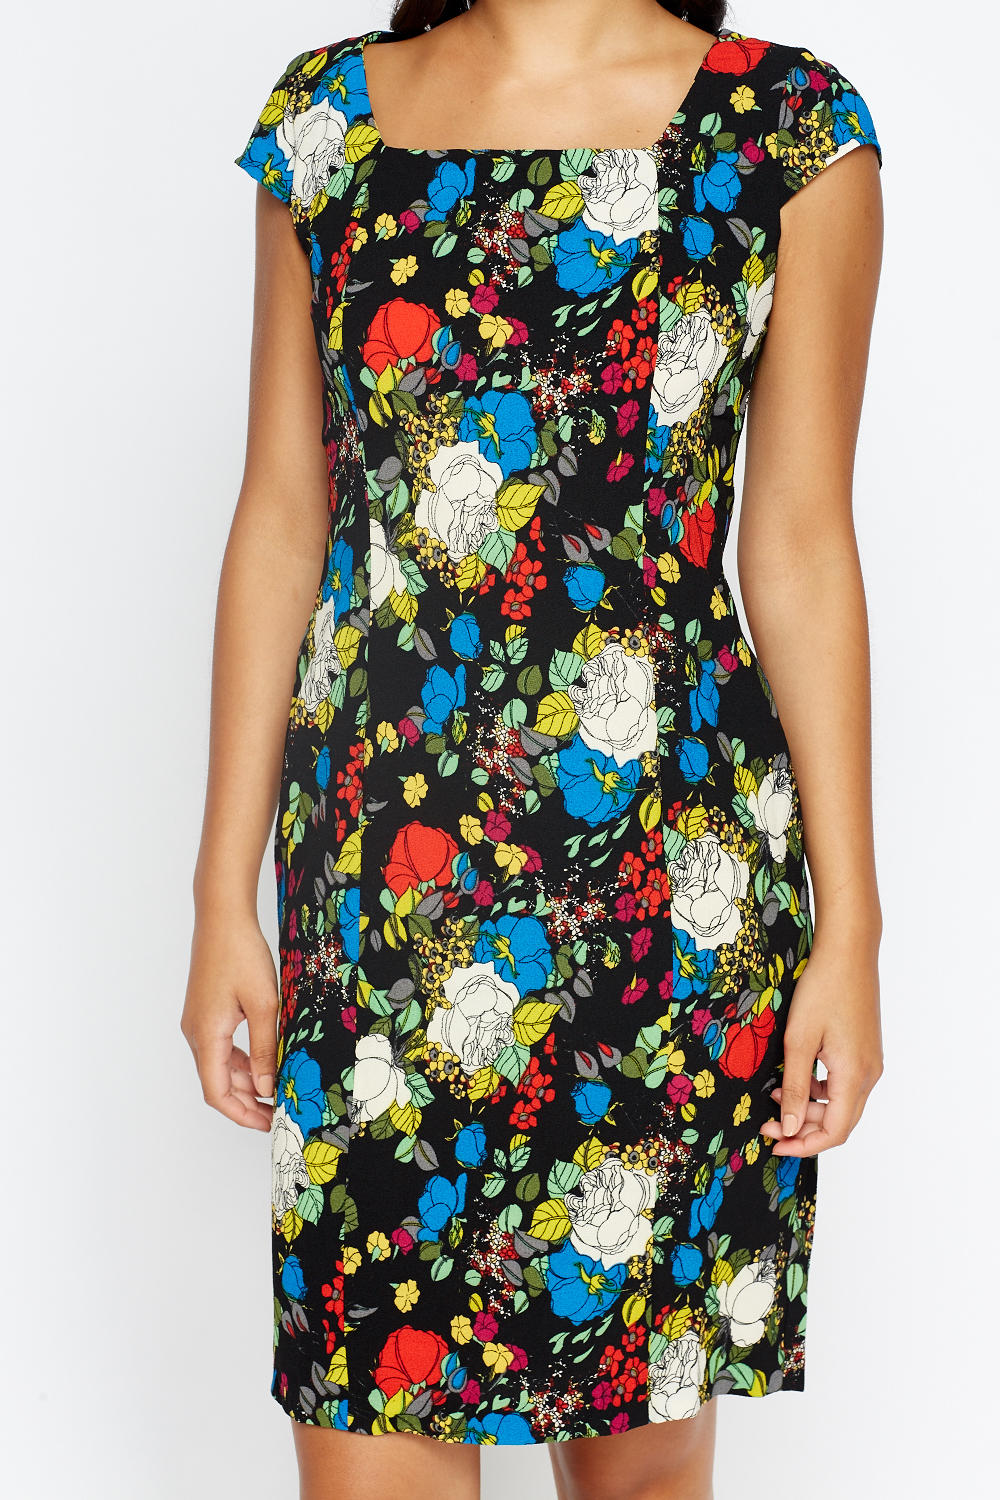 Rent Blue Floral Throw Shift Dress by Slate & Willow for $30 - $40 only at Rent the Runway.